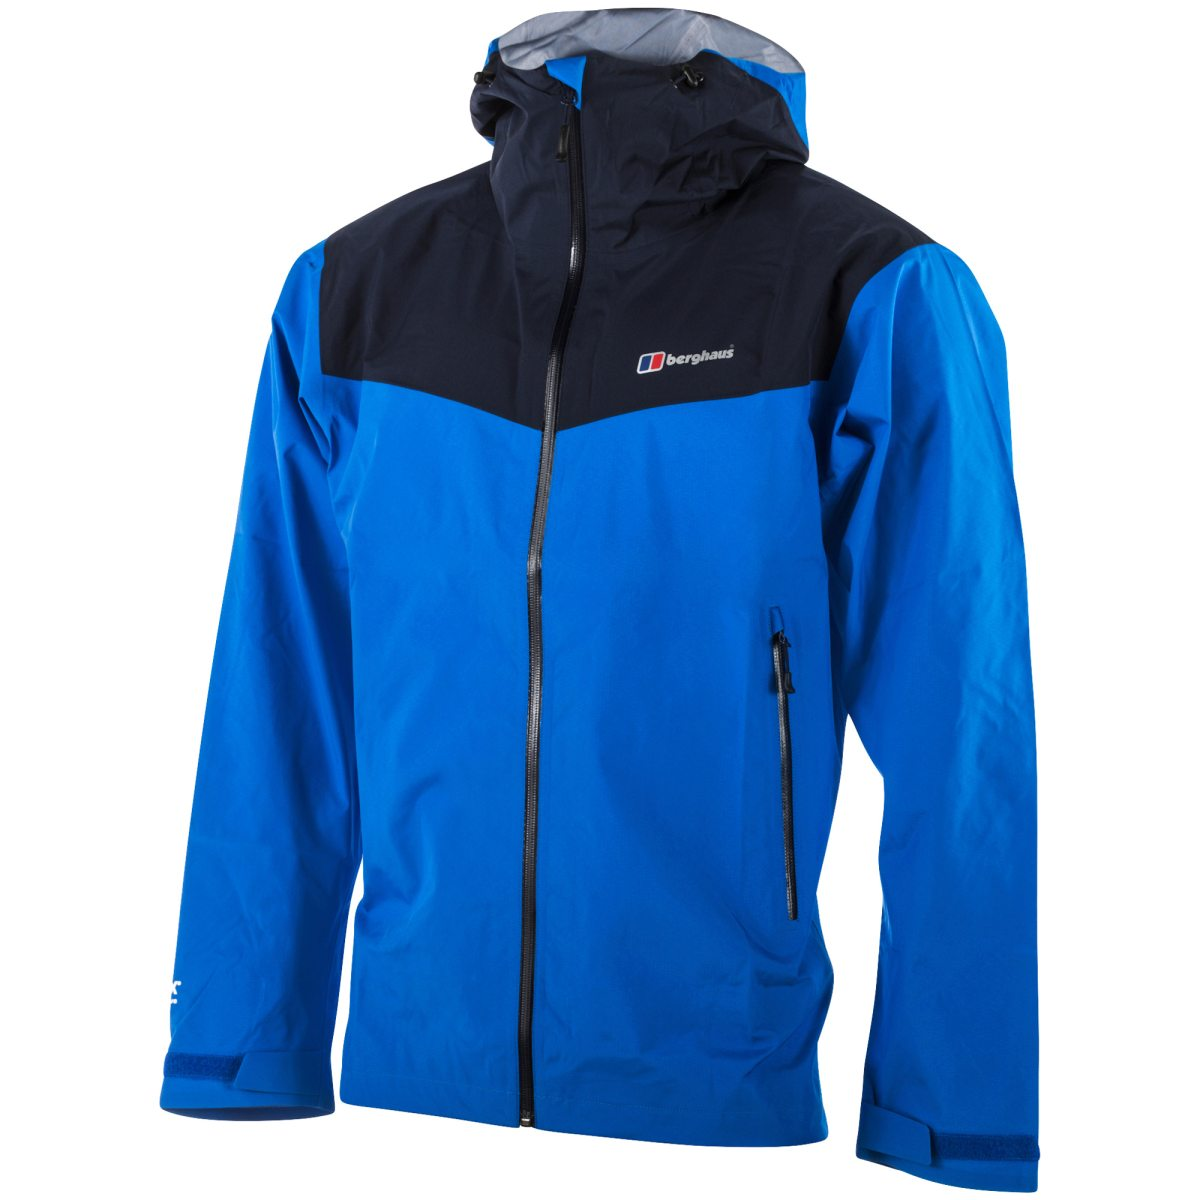 629f1896 Find every shop in the world selling gtx jacket skalljakke at ...